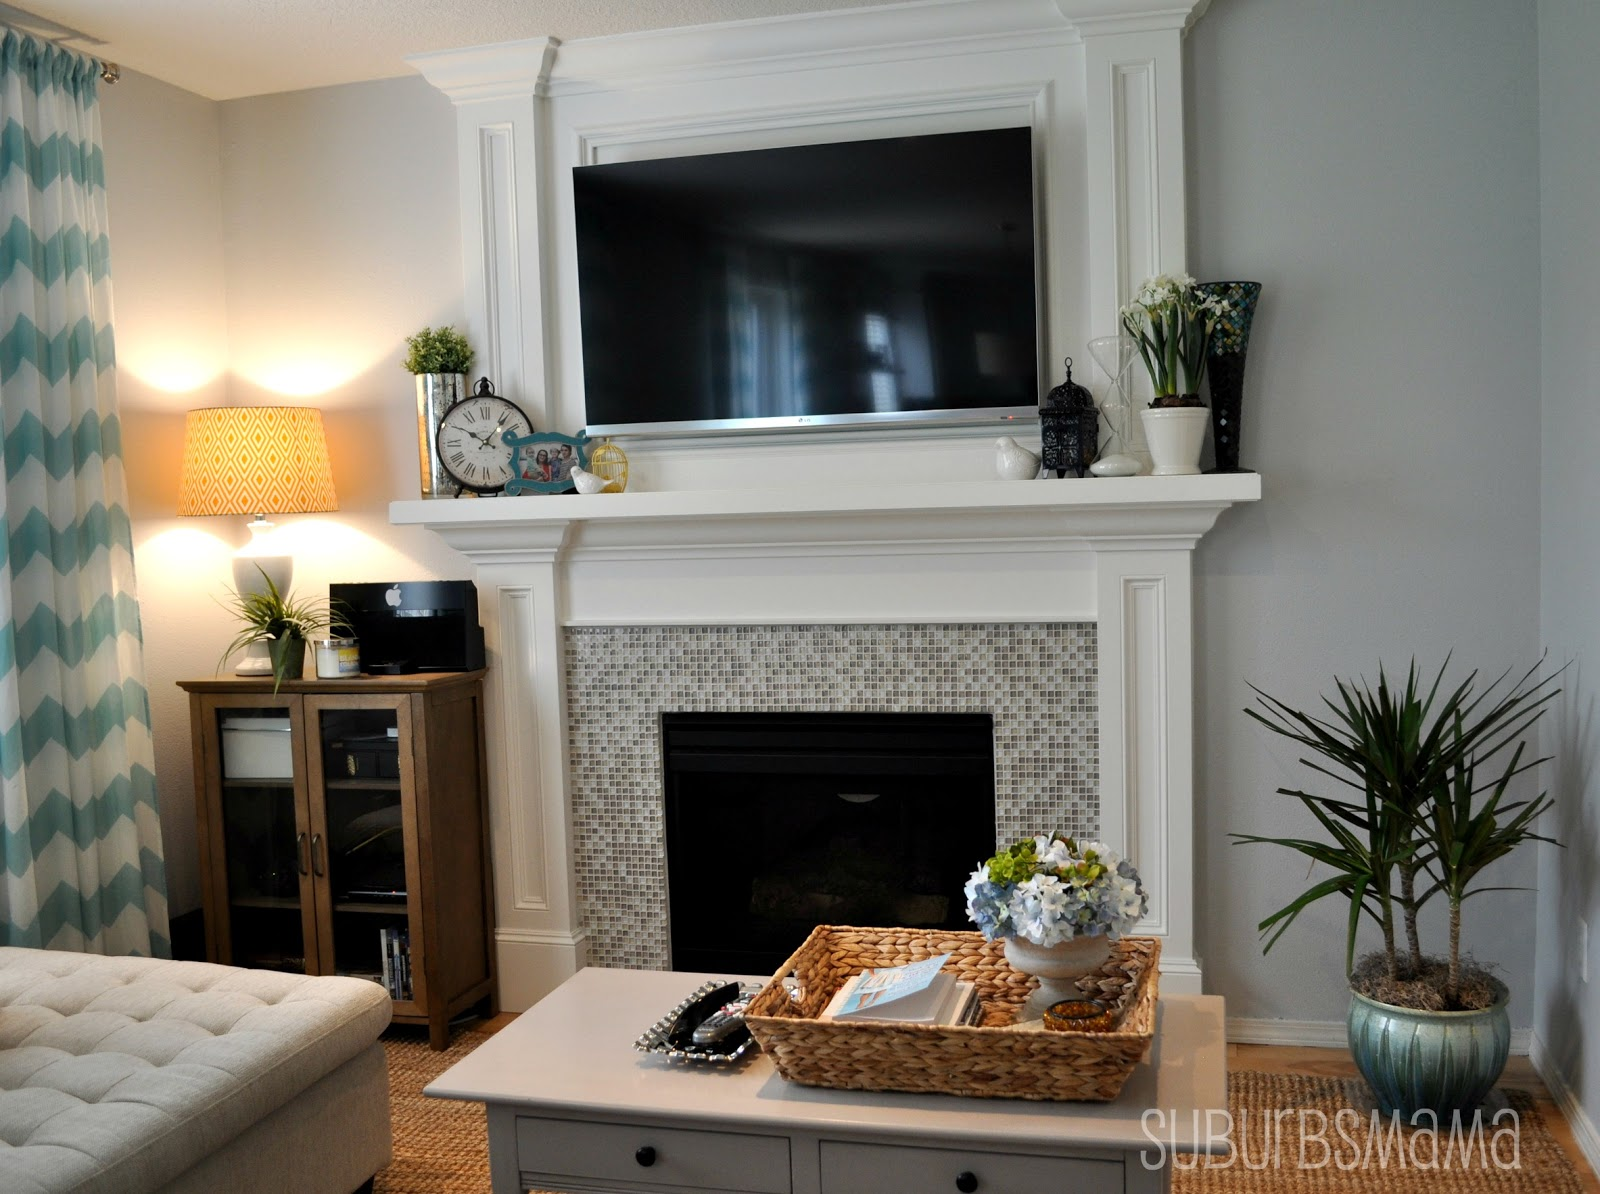 Suburbs Mama Family Room Updated